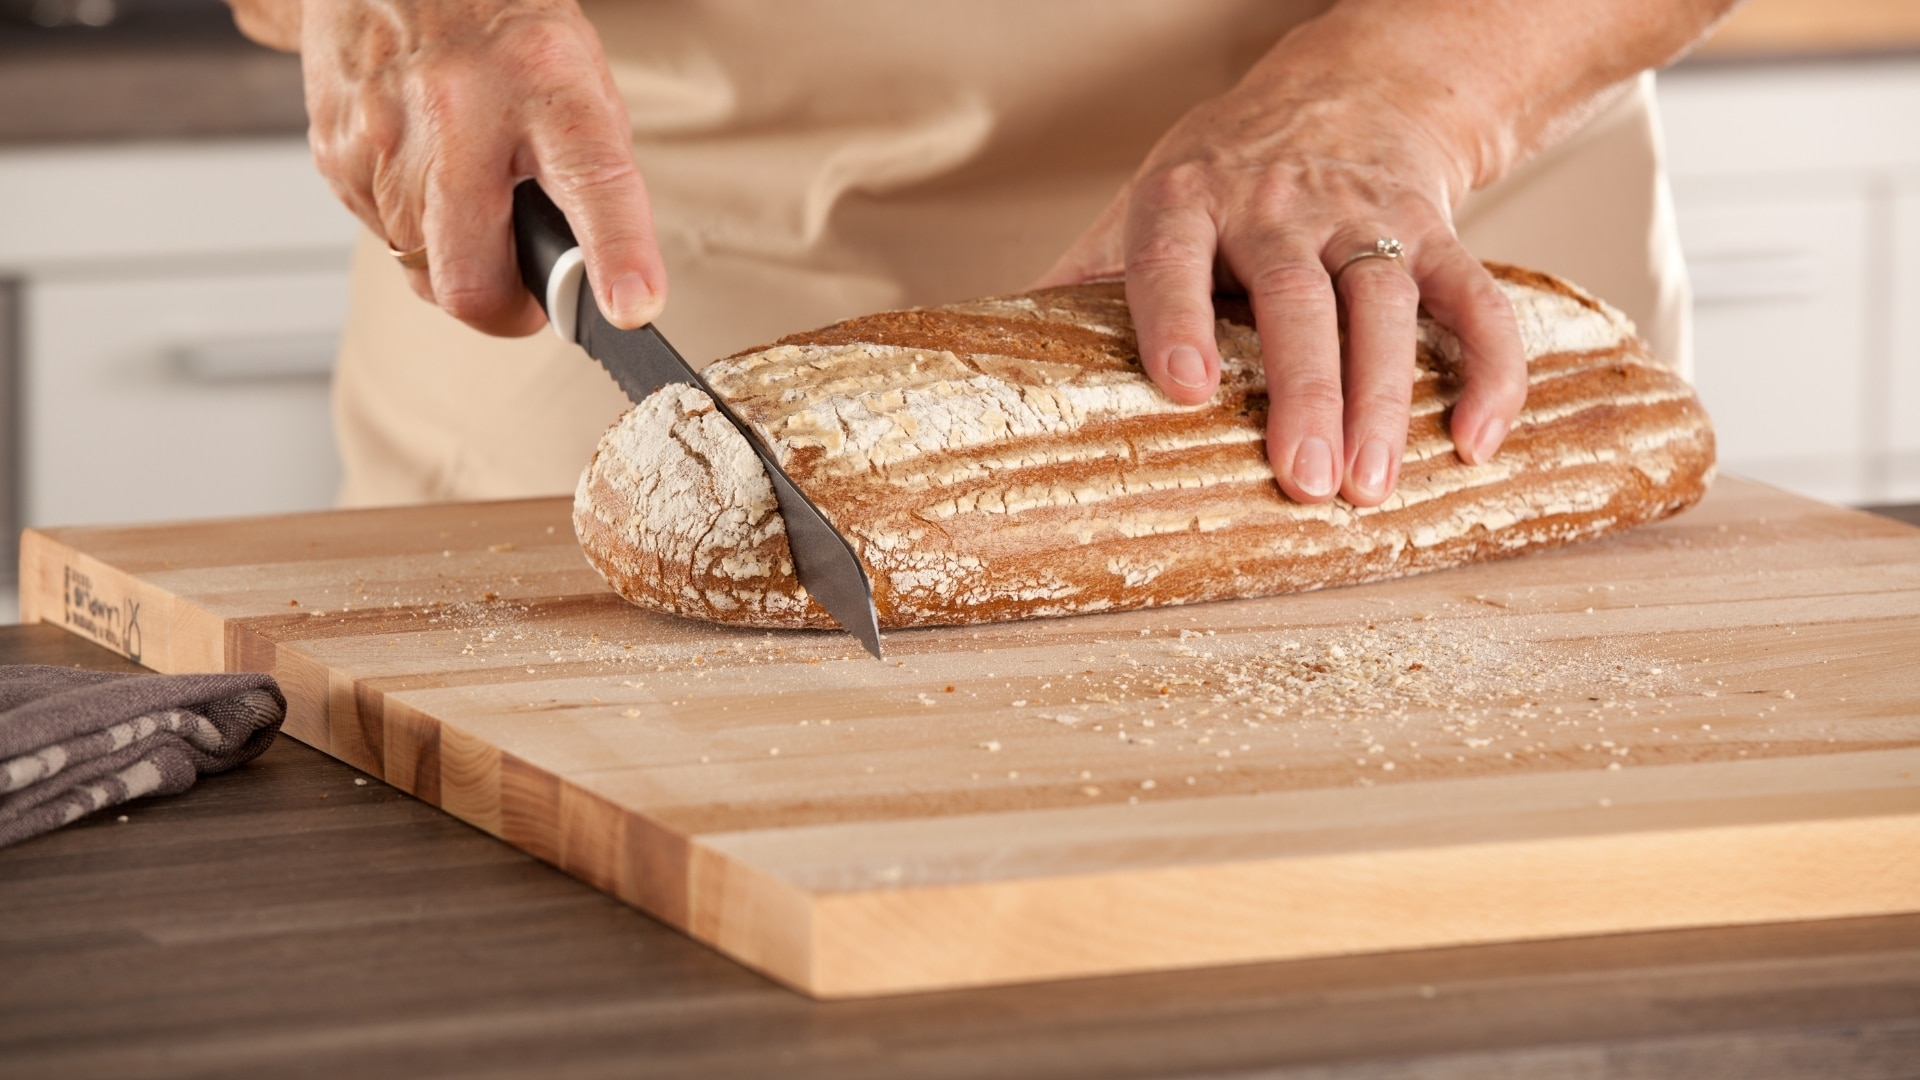 Types of Bread Knives and Criteria for Choosing the Best One